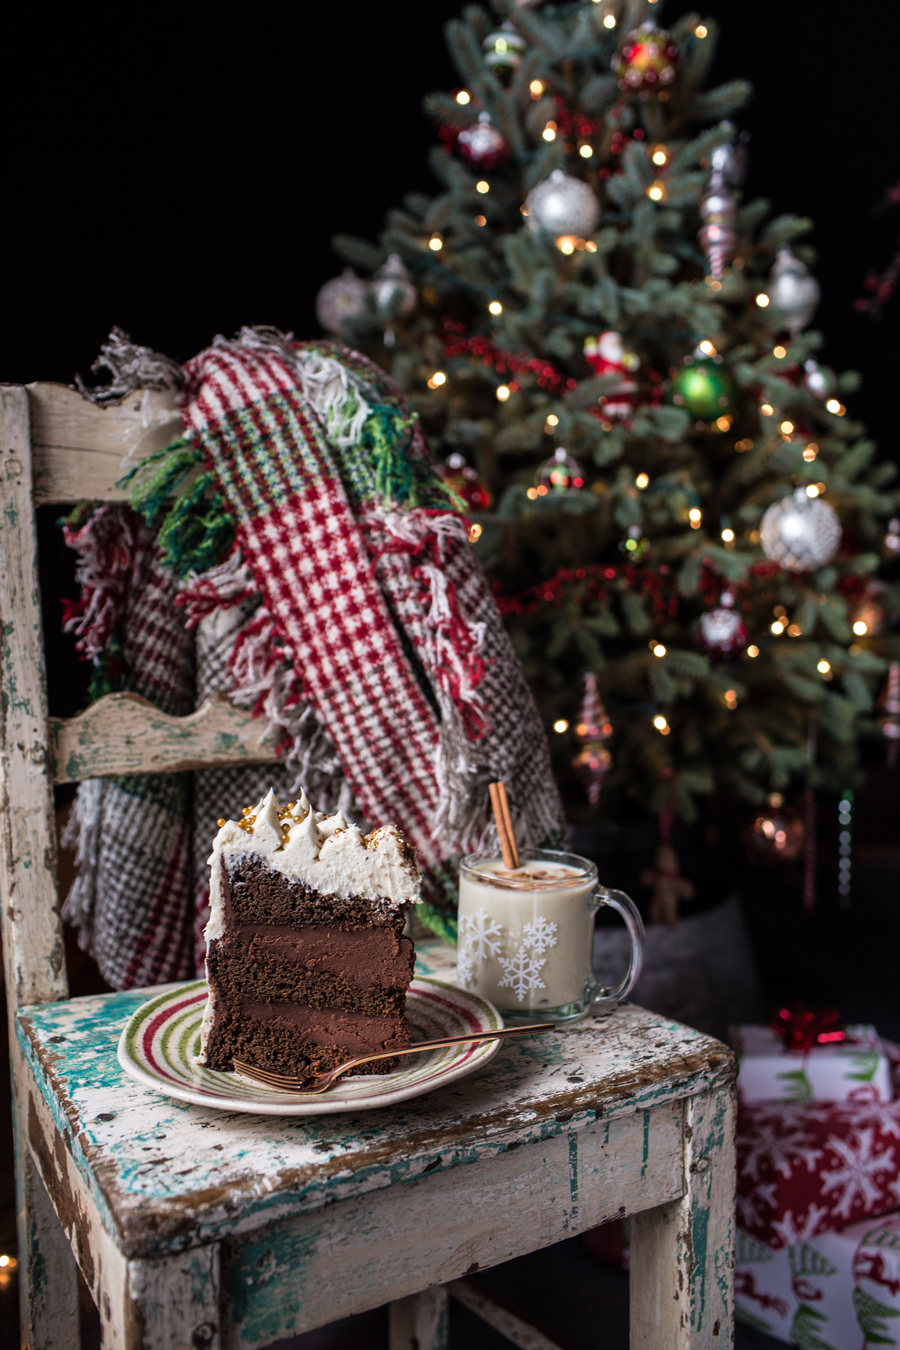 Christmas Party Dessert Recipes | Crate and Barrel Blog